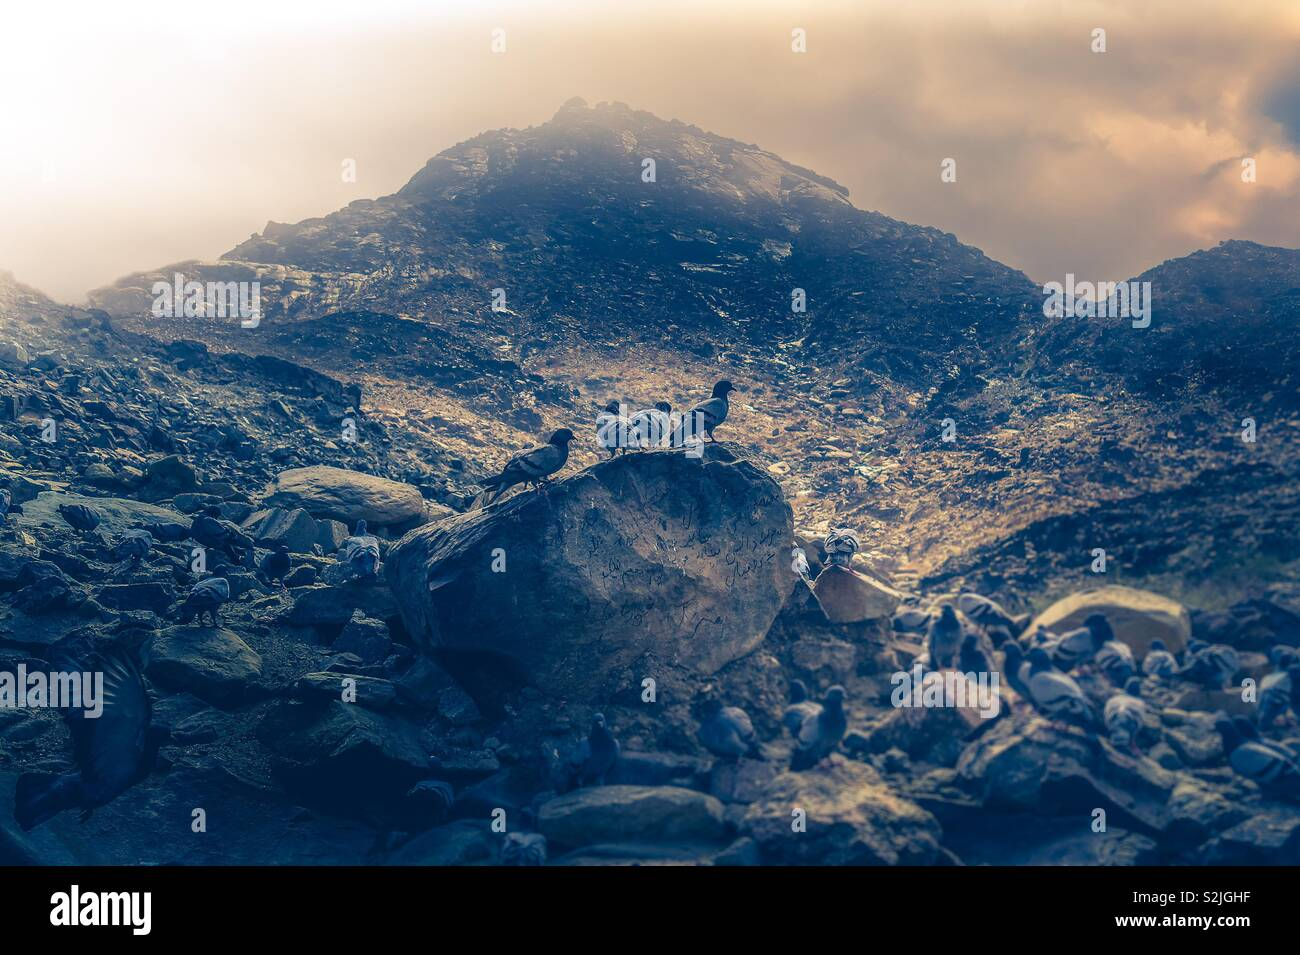 Mountain of Mecca KSA - Stock Image